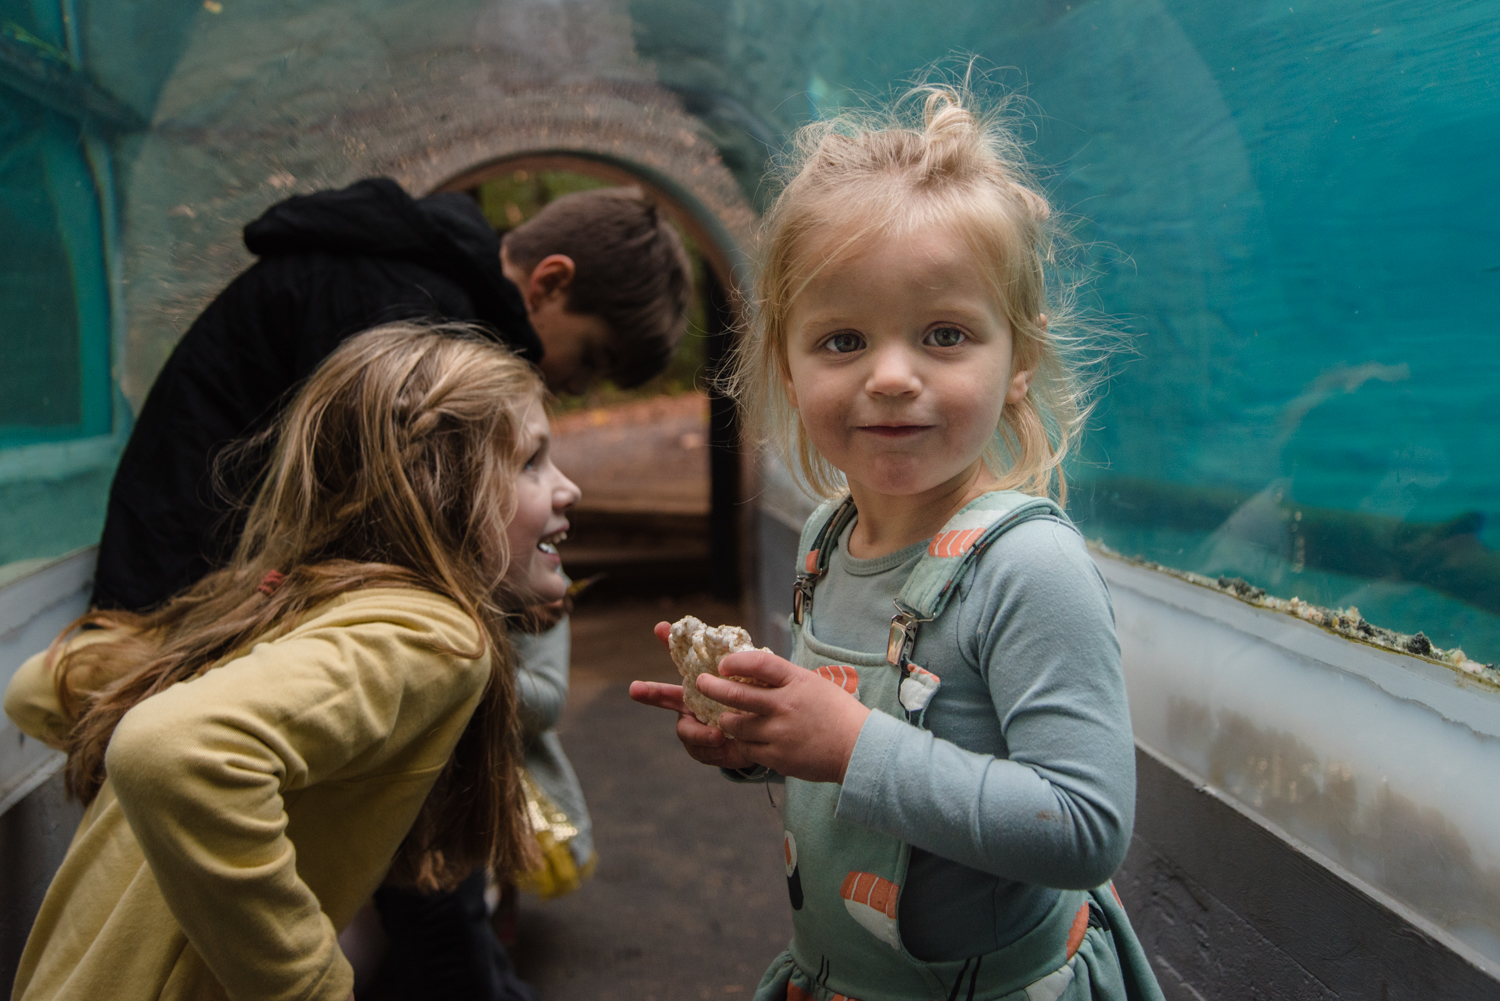 day at the eco museum23.jpg